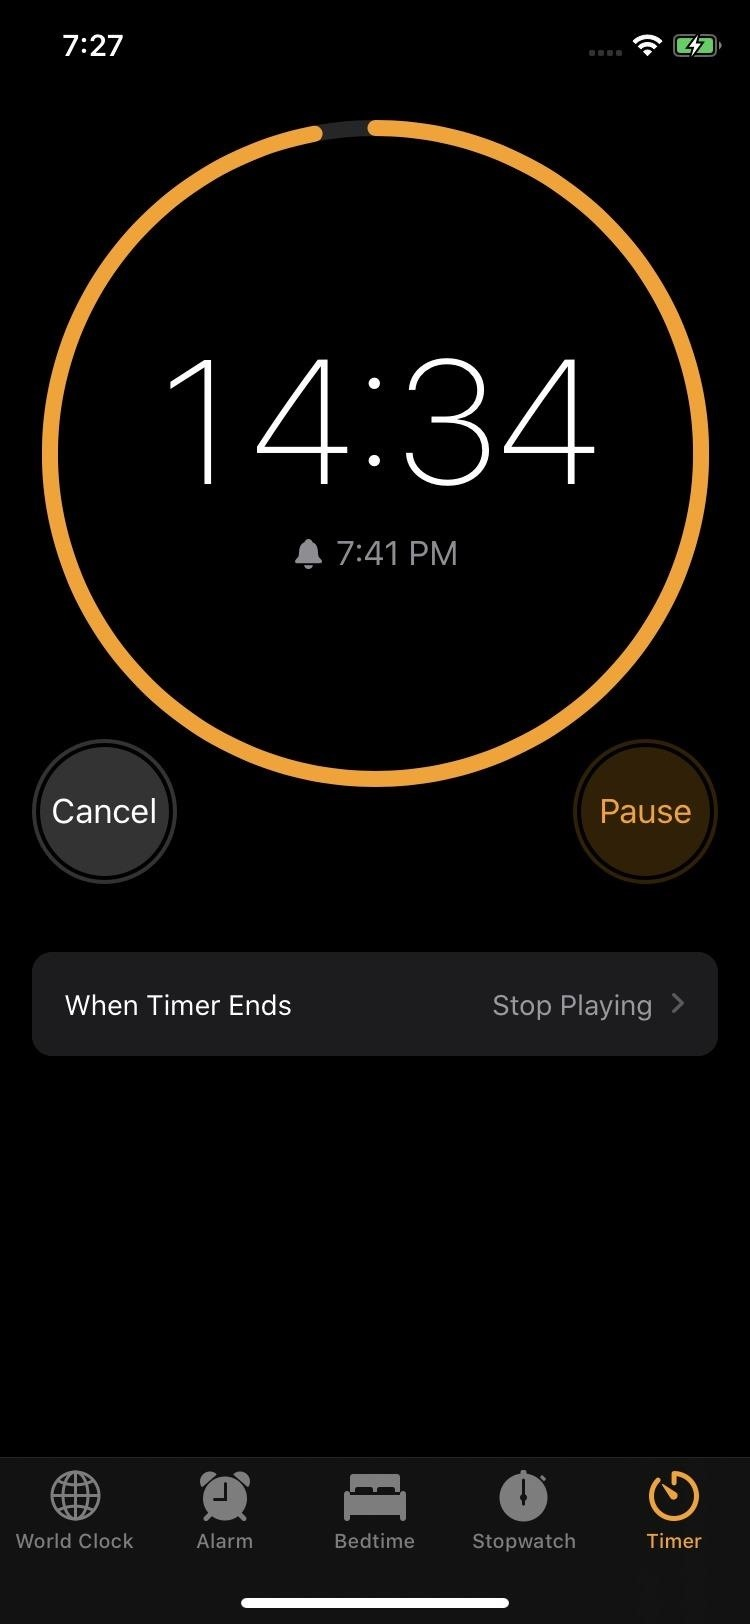 Set a sleep timer on your iPhone to help you fall asleep after falling asleep not be aroused by music, movies, podcasts and other media.